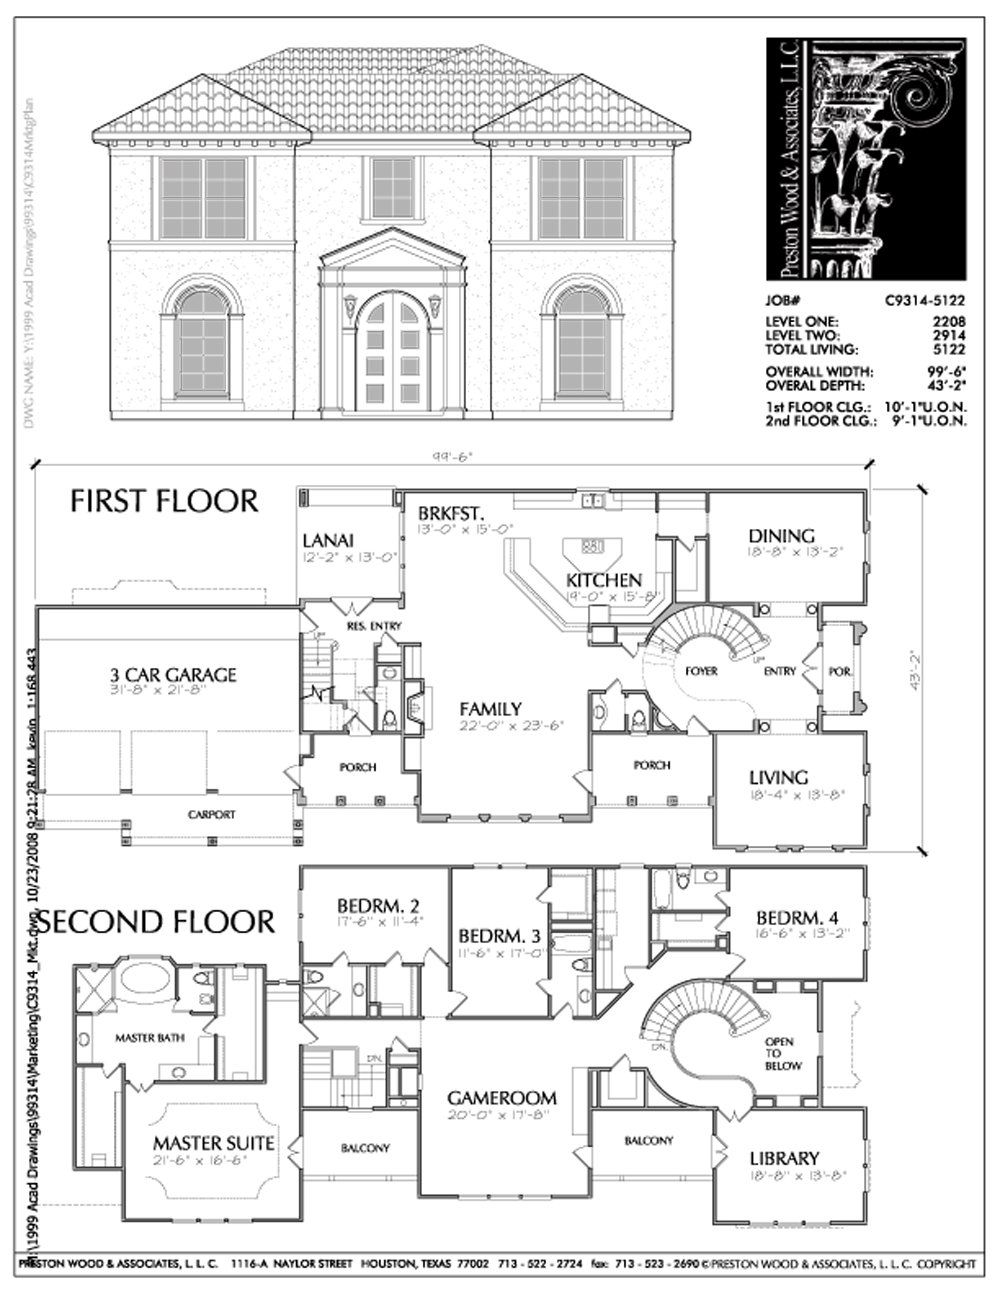 Two Story Urban House Plan C9314 House Plans House Plans 2 Story How To Plan